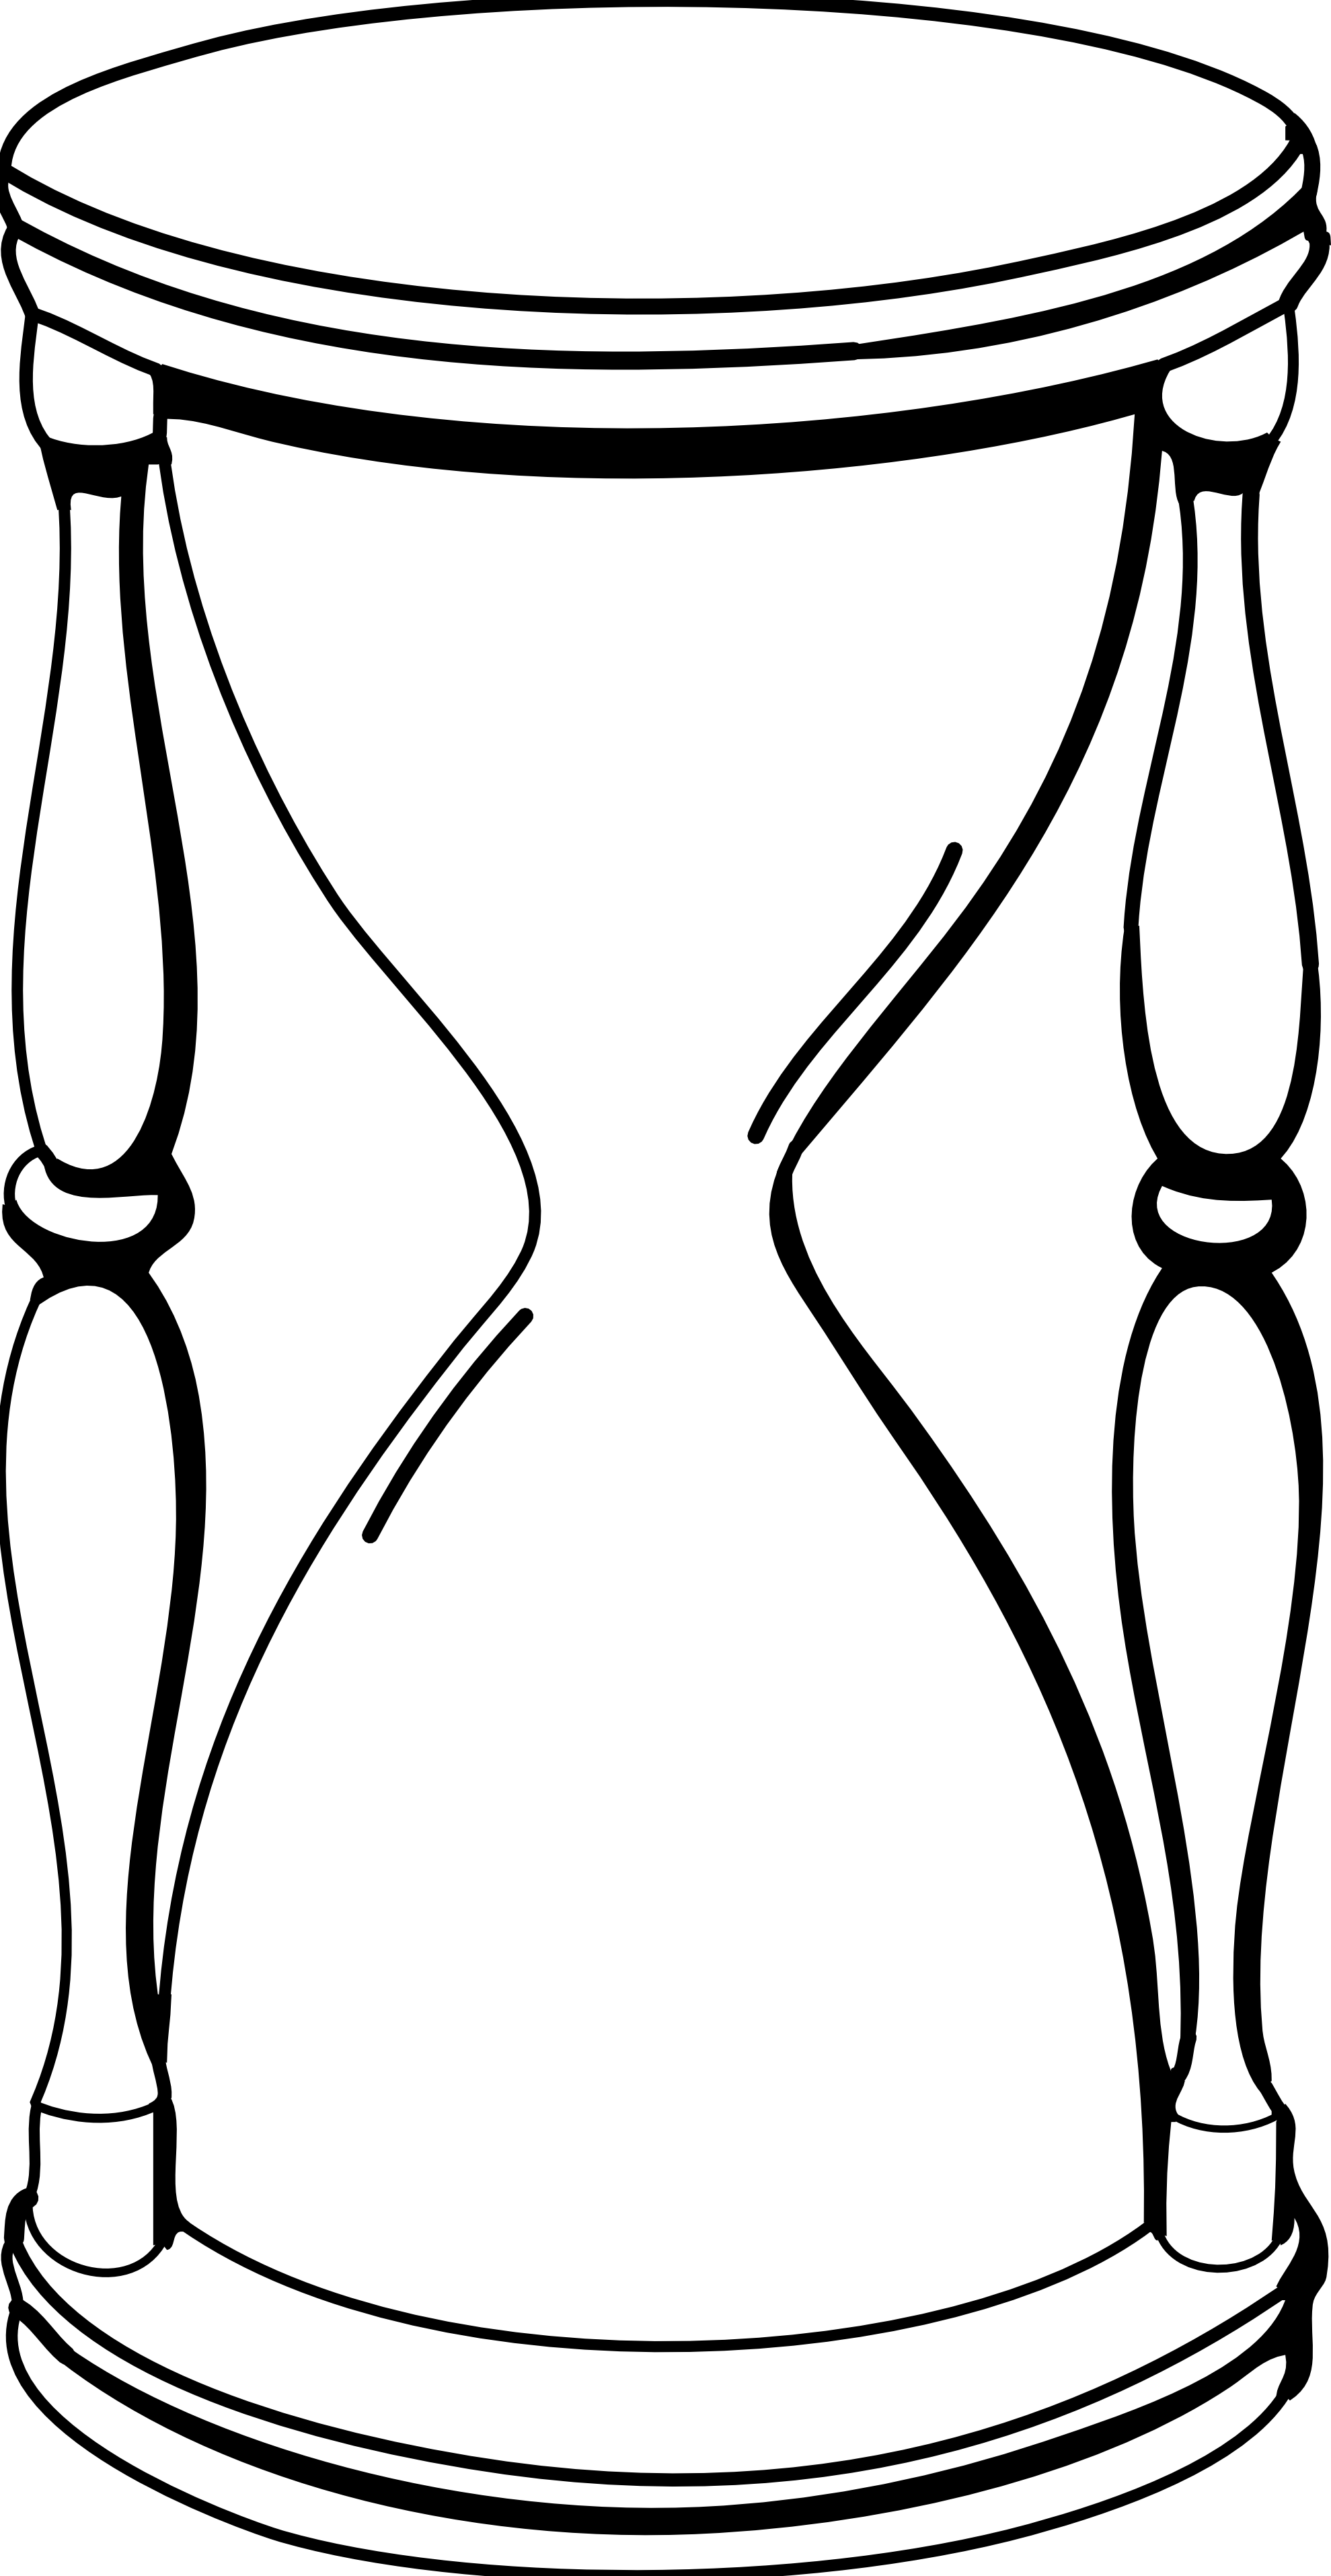 Hourglass clipart sand timer And and Black Glass Hour